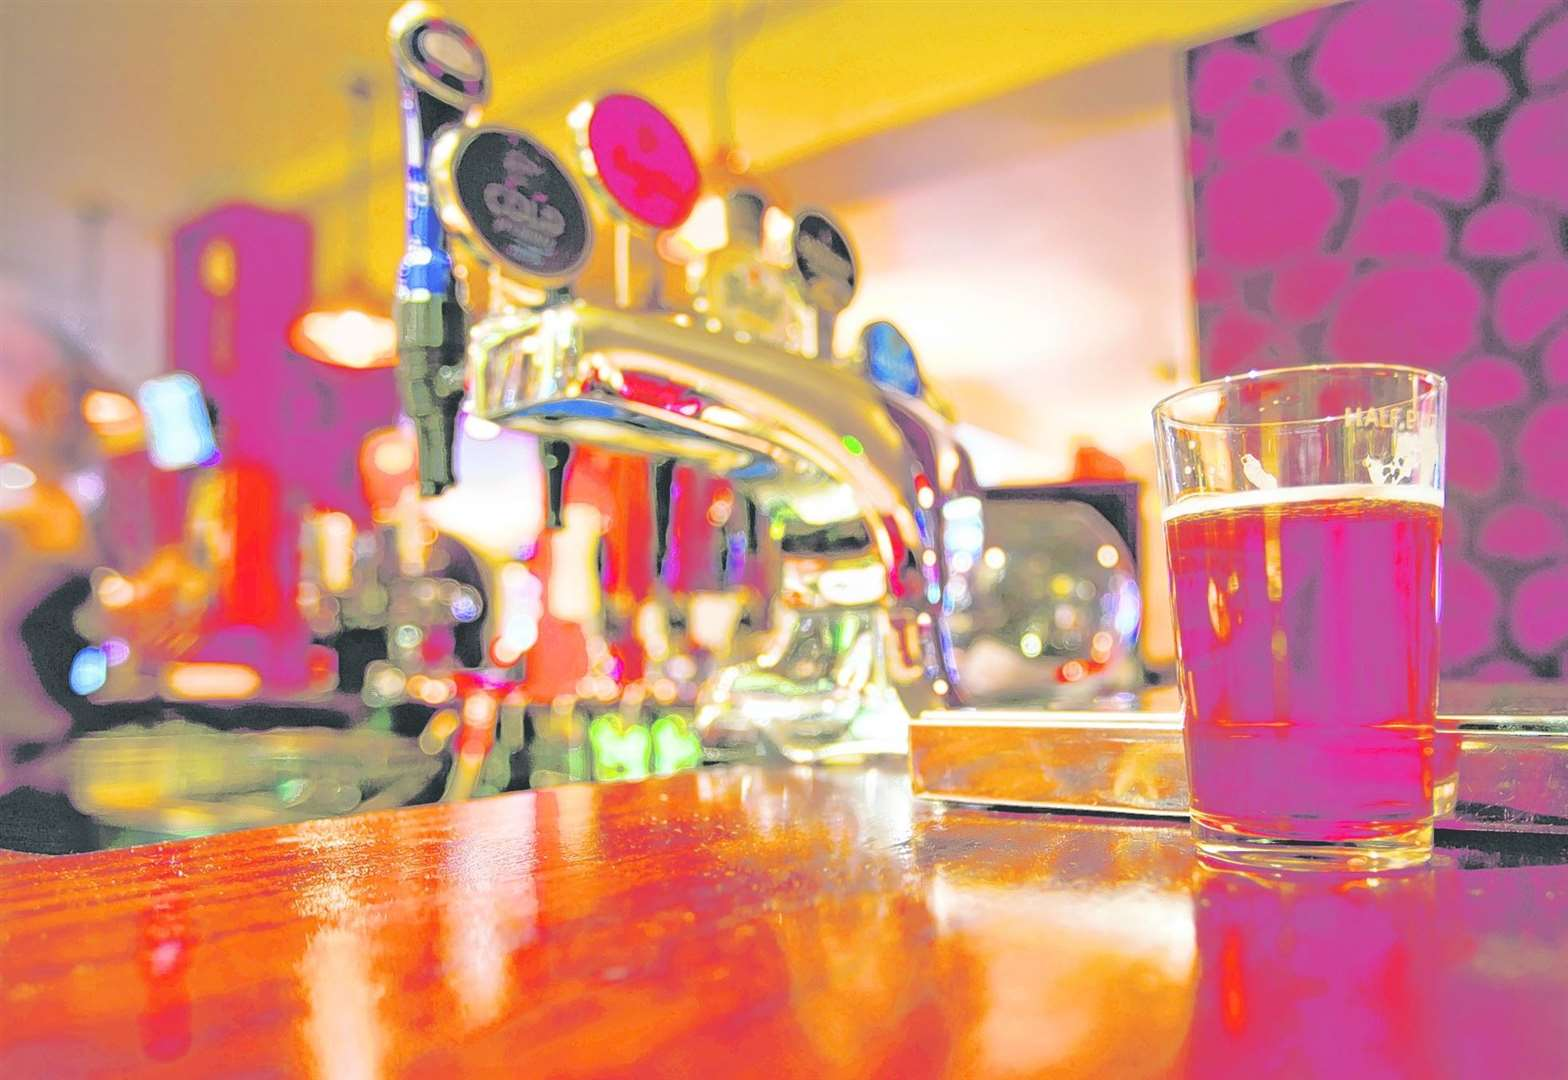 Anyone for a pint? Check out these Maidstone pubs